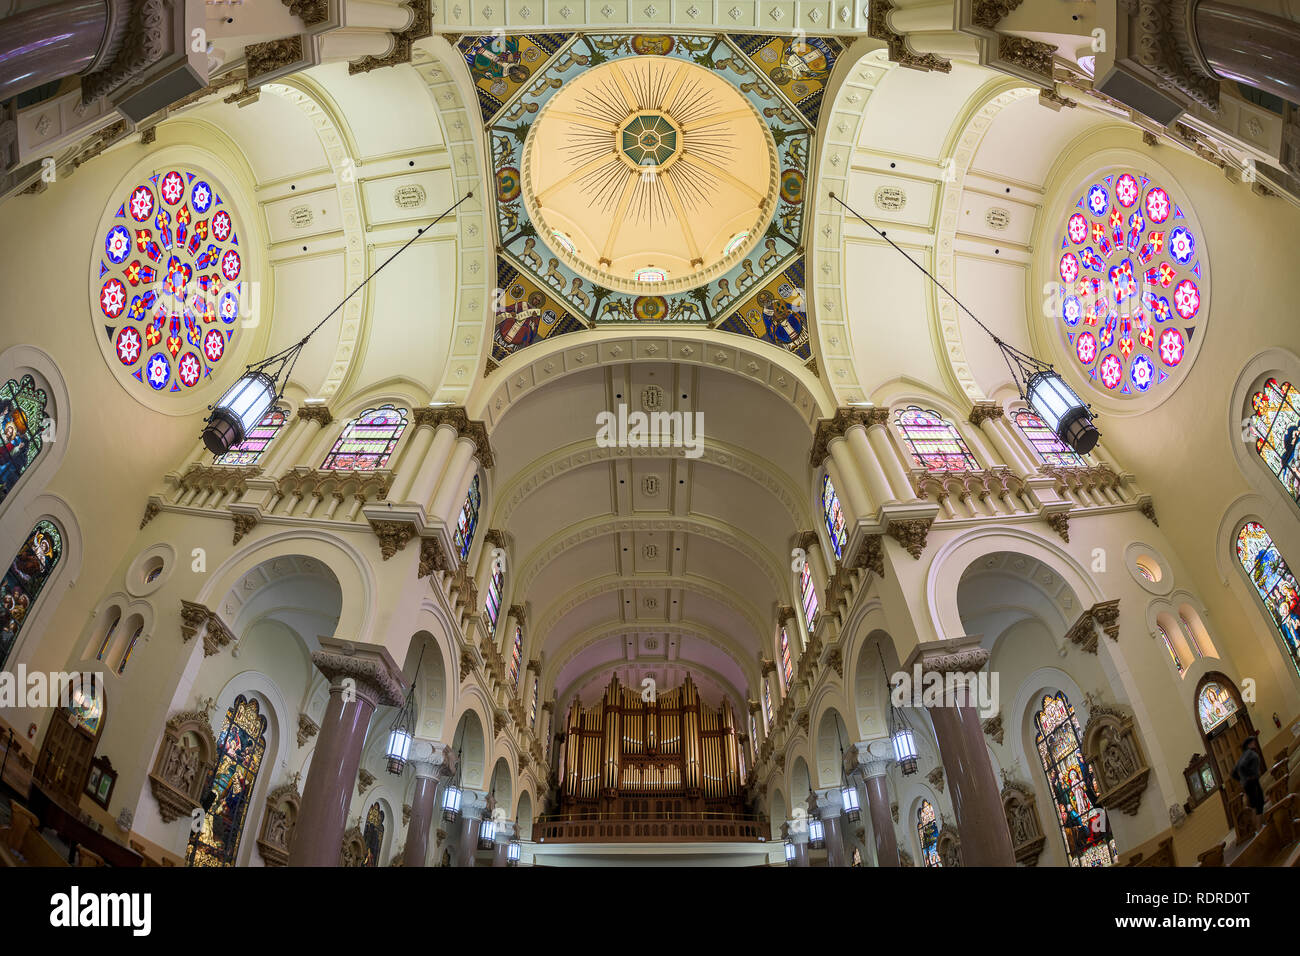 Interior of the Sacred Heart Catholic Church in downtown Tampa, Florida - Stock Image